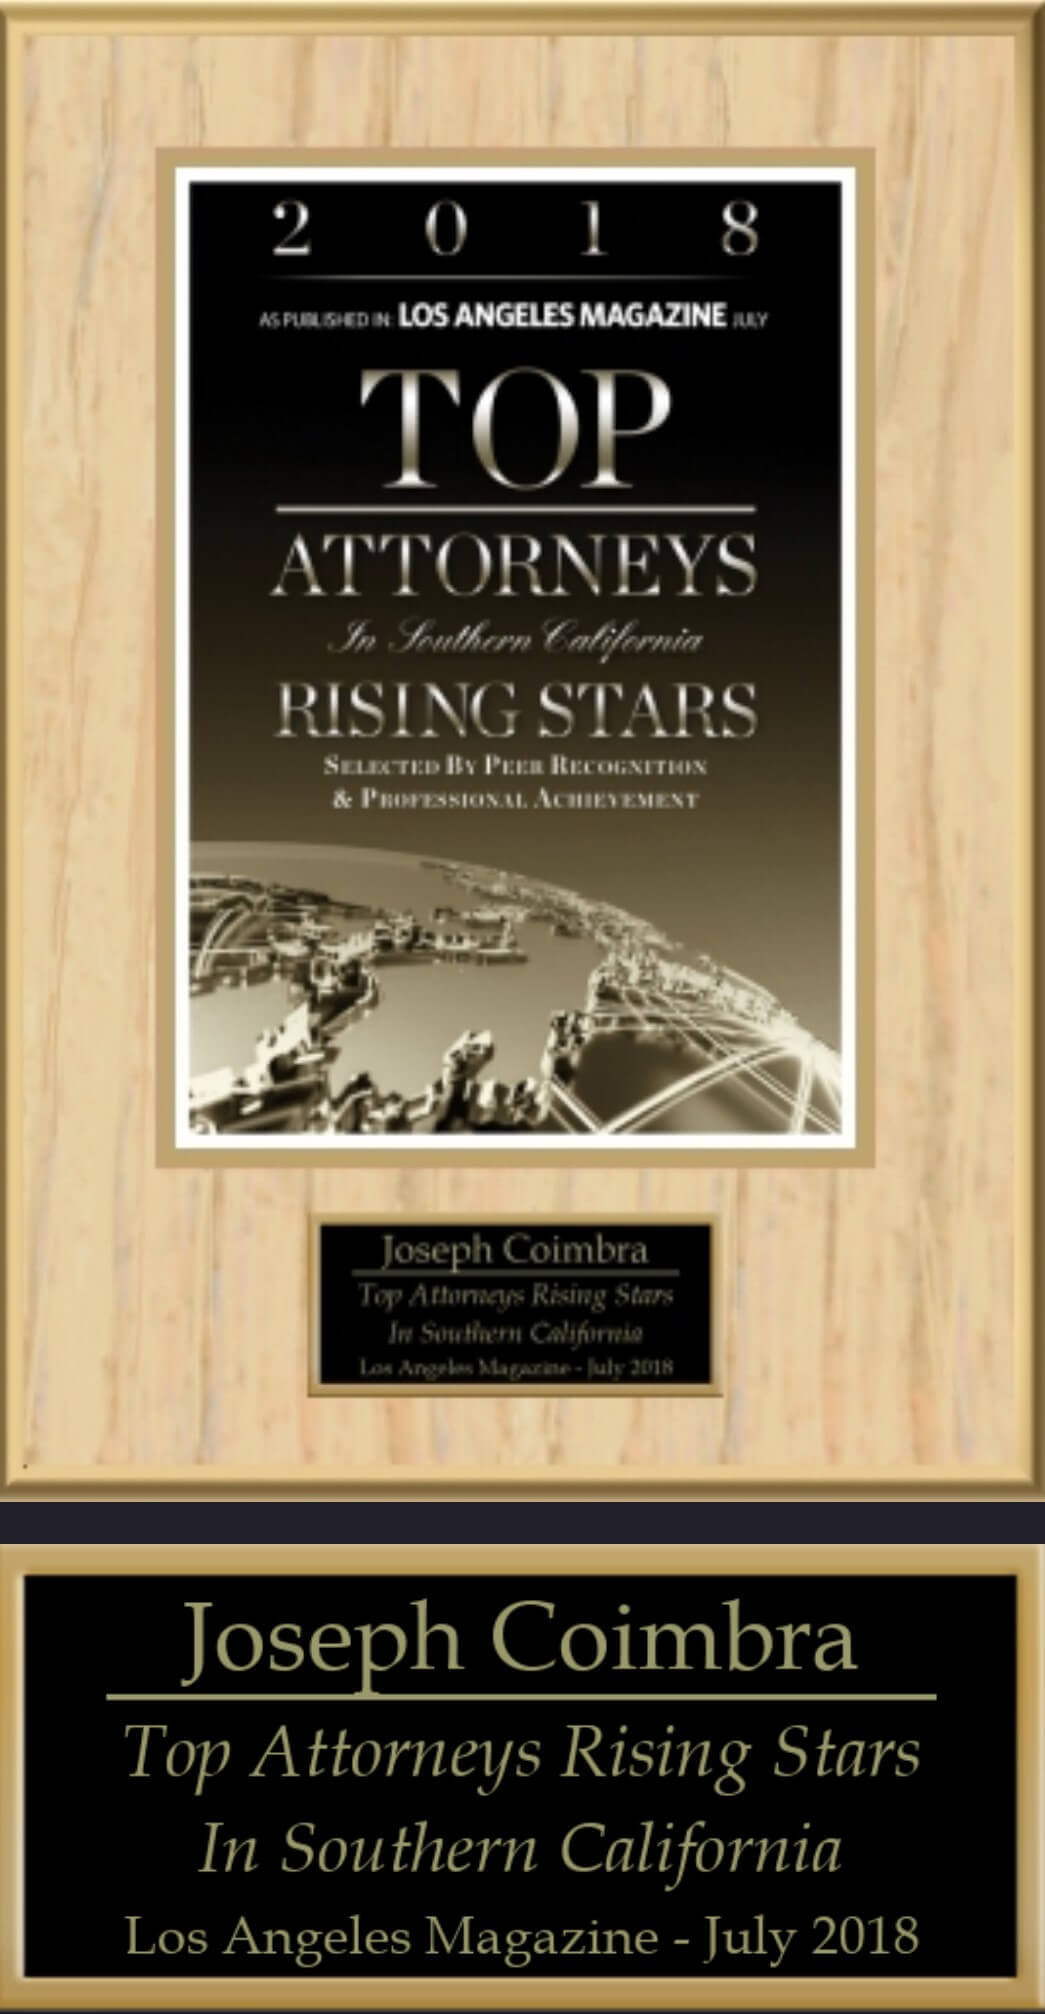 2018 Top Attorneys Rising Stars